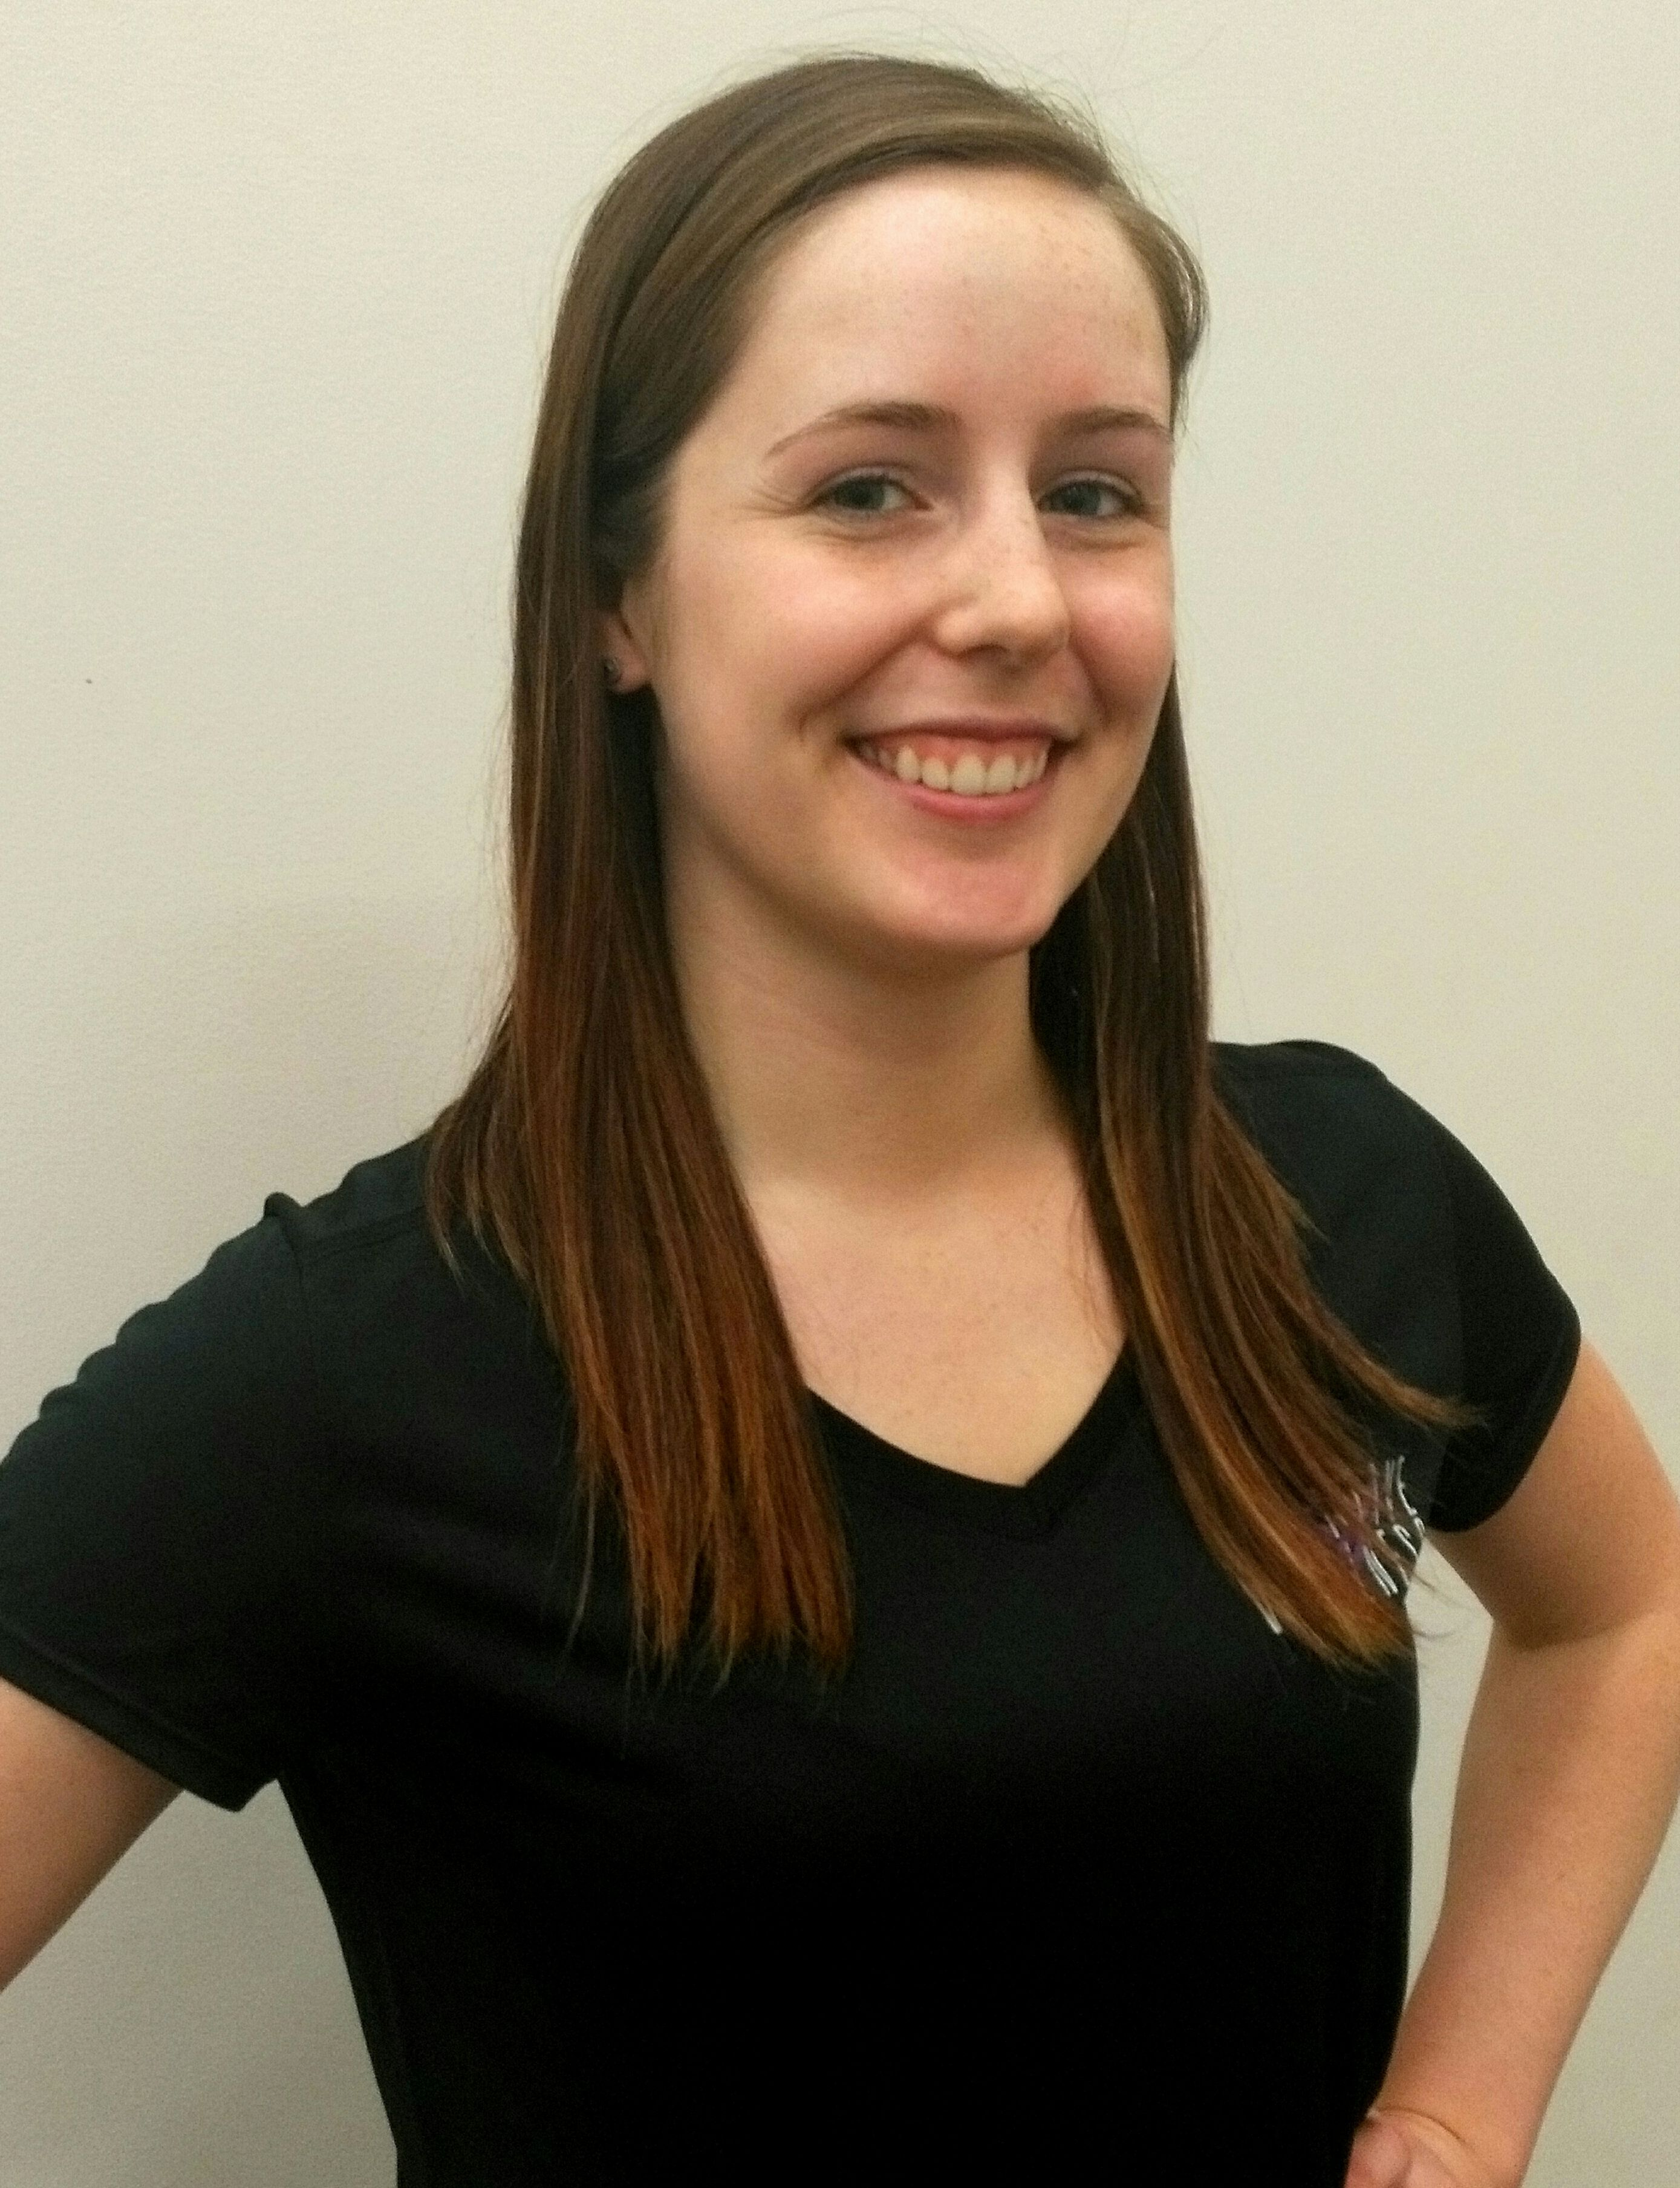 Caitlin Licensed Massage Therapist Caitlin Earned Her Massage